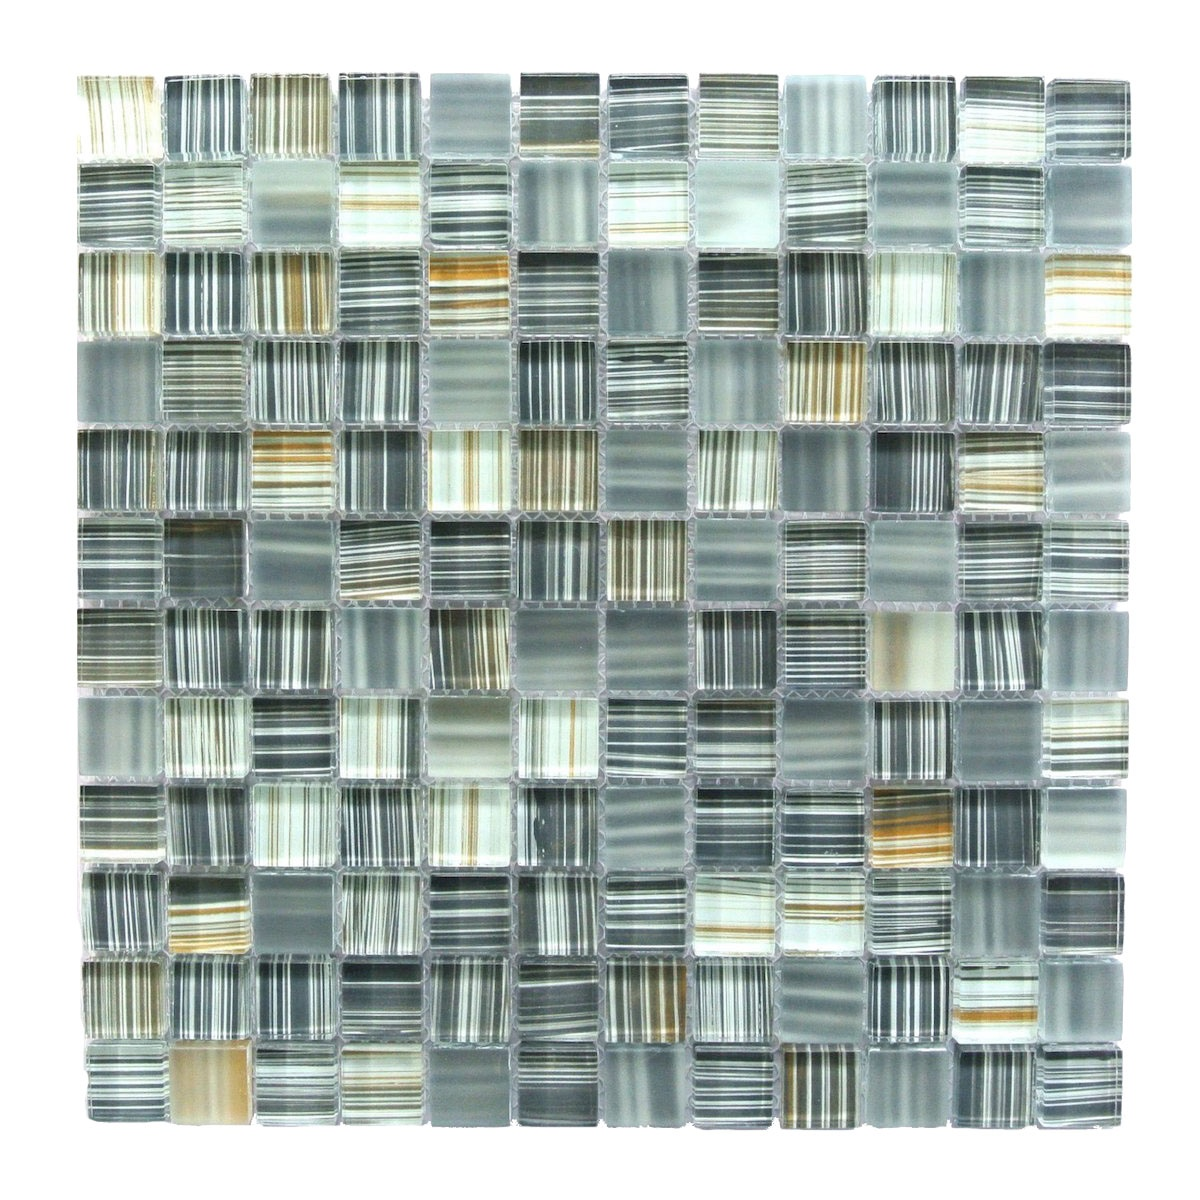 "Abolos- Handicraft 1"" x 1"" Glass Mosaic Tile in Ash Gray (4.9sqft / 5pc Box)"